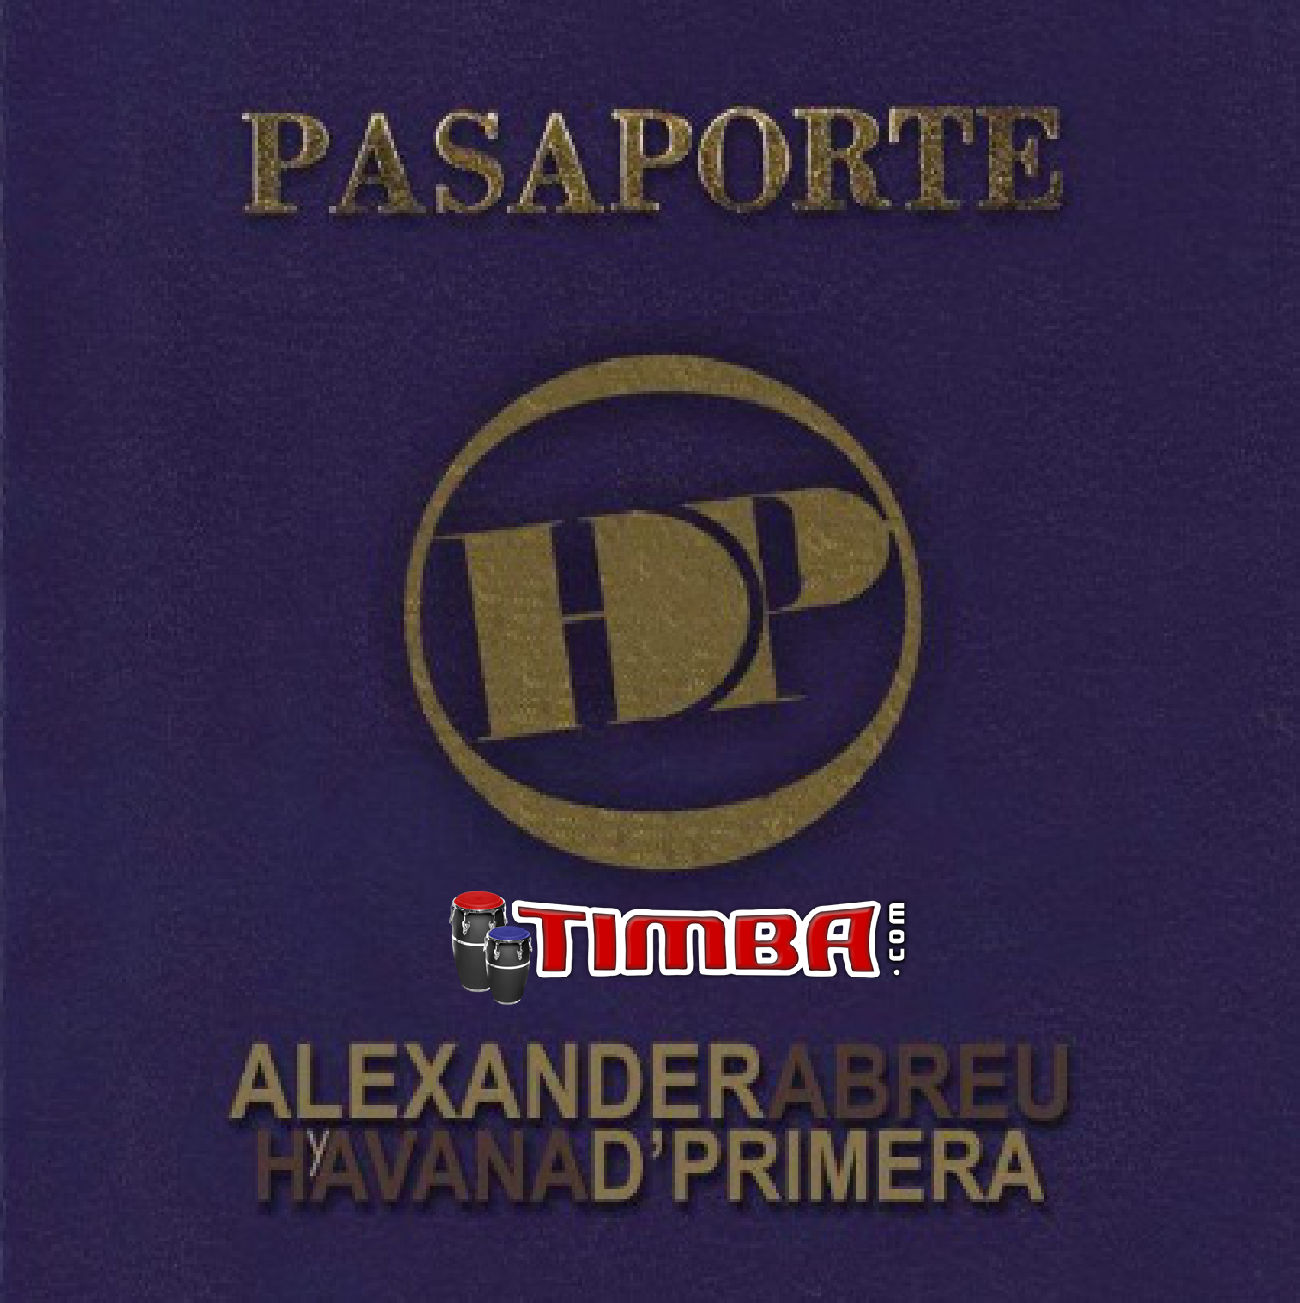 havana-d-primera-cover-disc